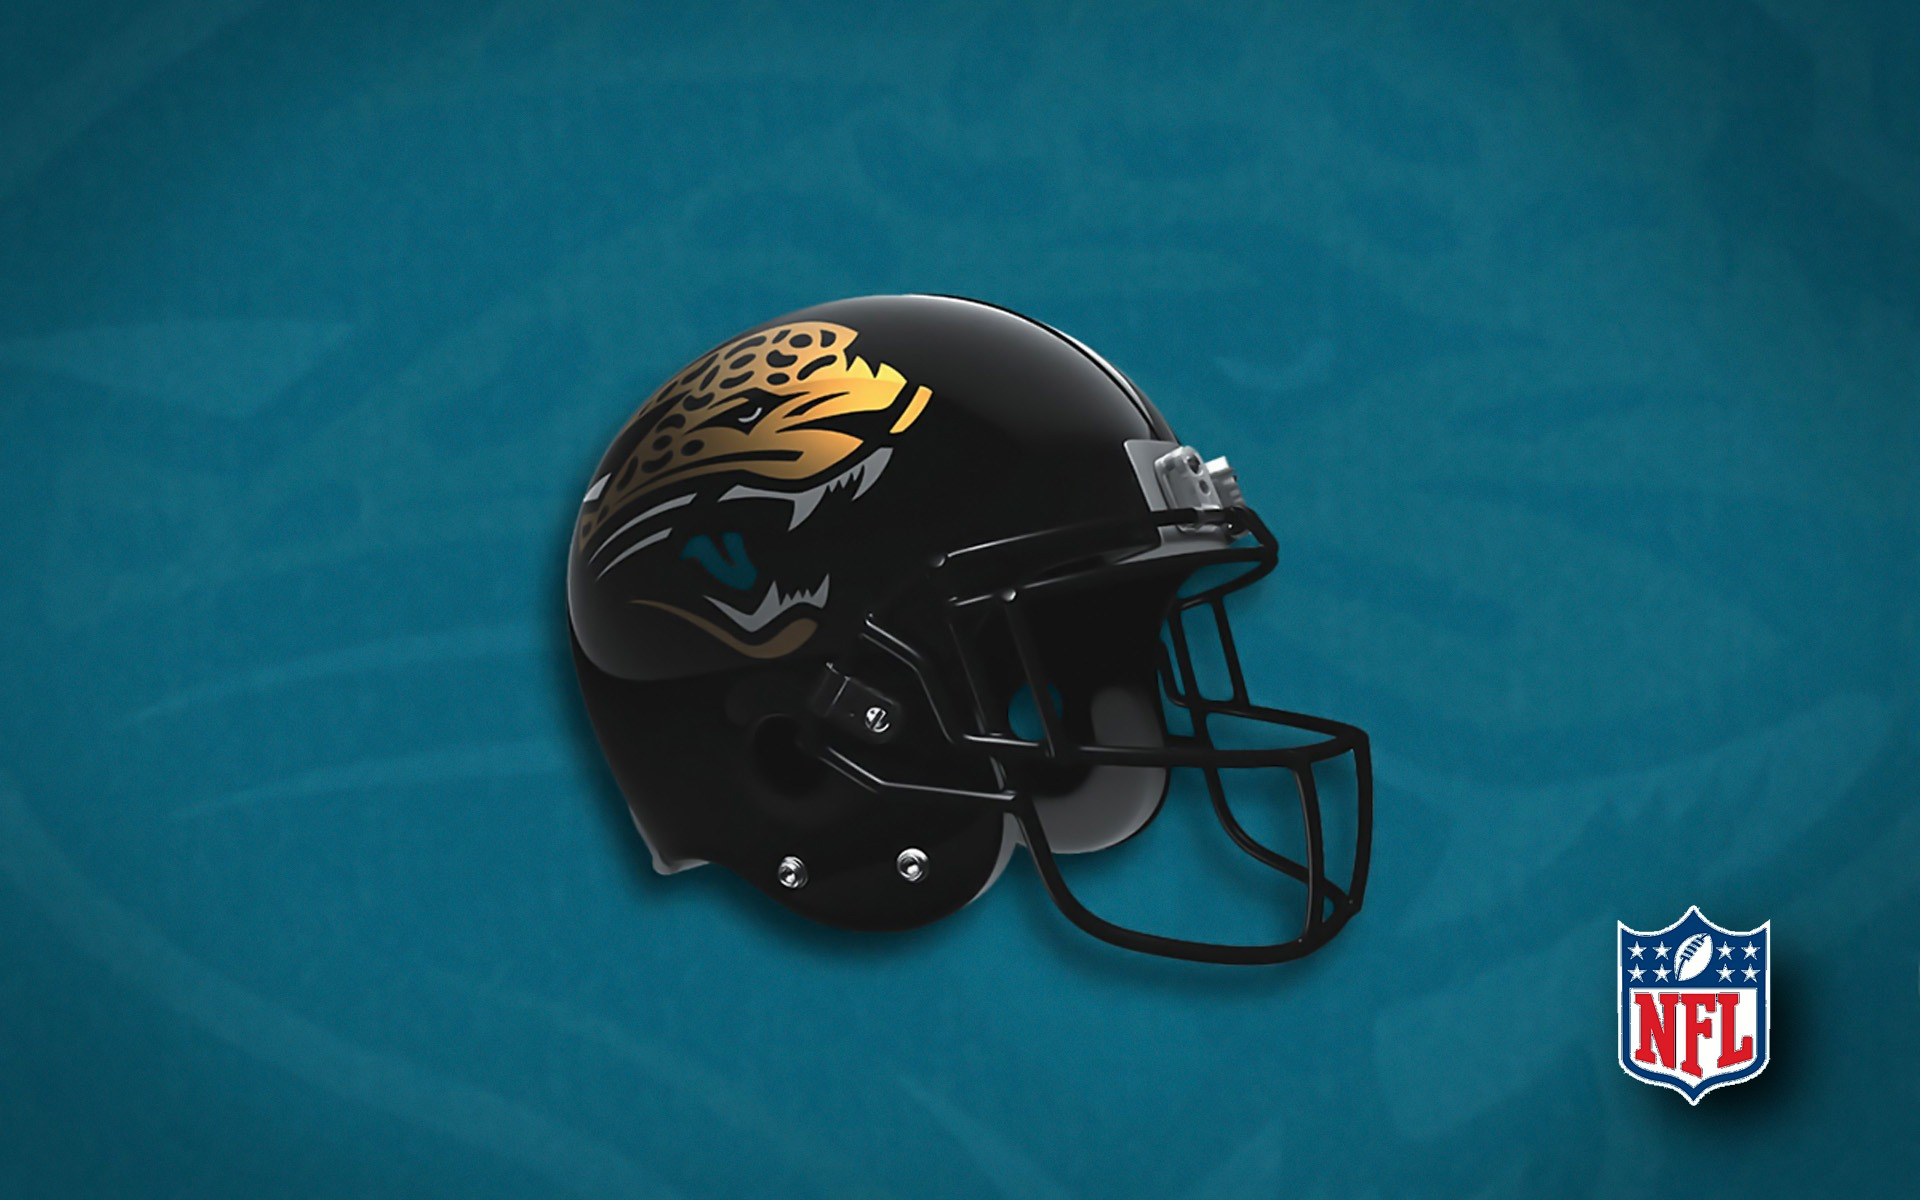 jacksonville jaguars new logo wallpaper wallpapers   Quotekocom 1920x1200